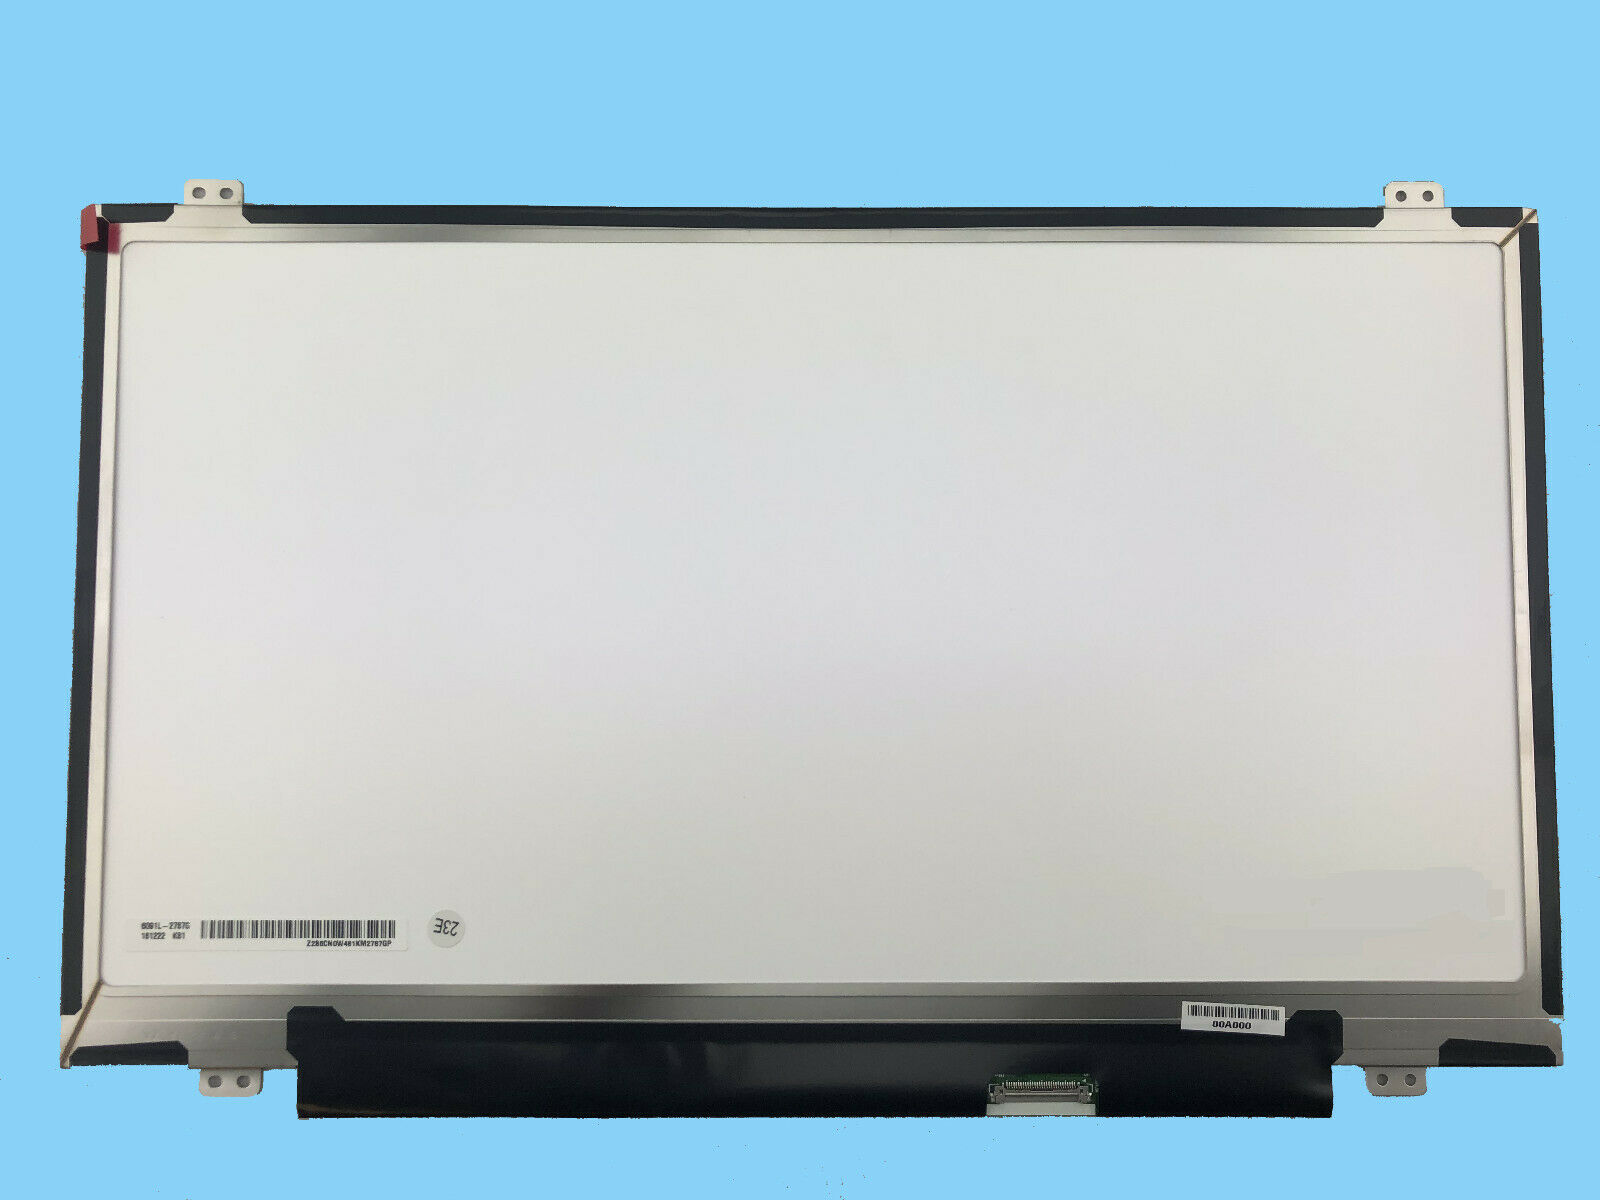 FHD 1920x1080 120Hz Upgrade LCD LED Display with Tools Matte SCREENARAMA New Screen Replacement for Acer Aspire N17C4